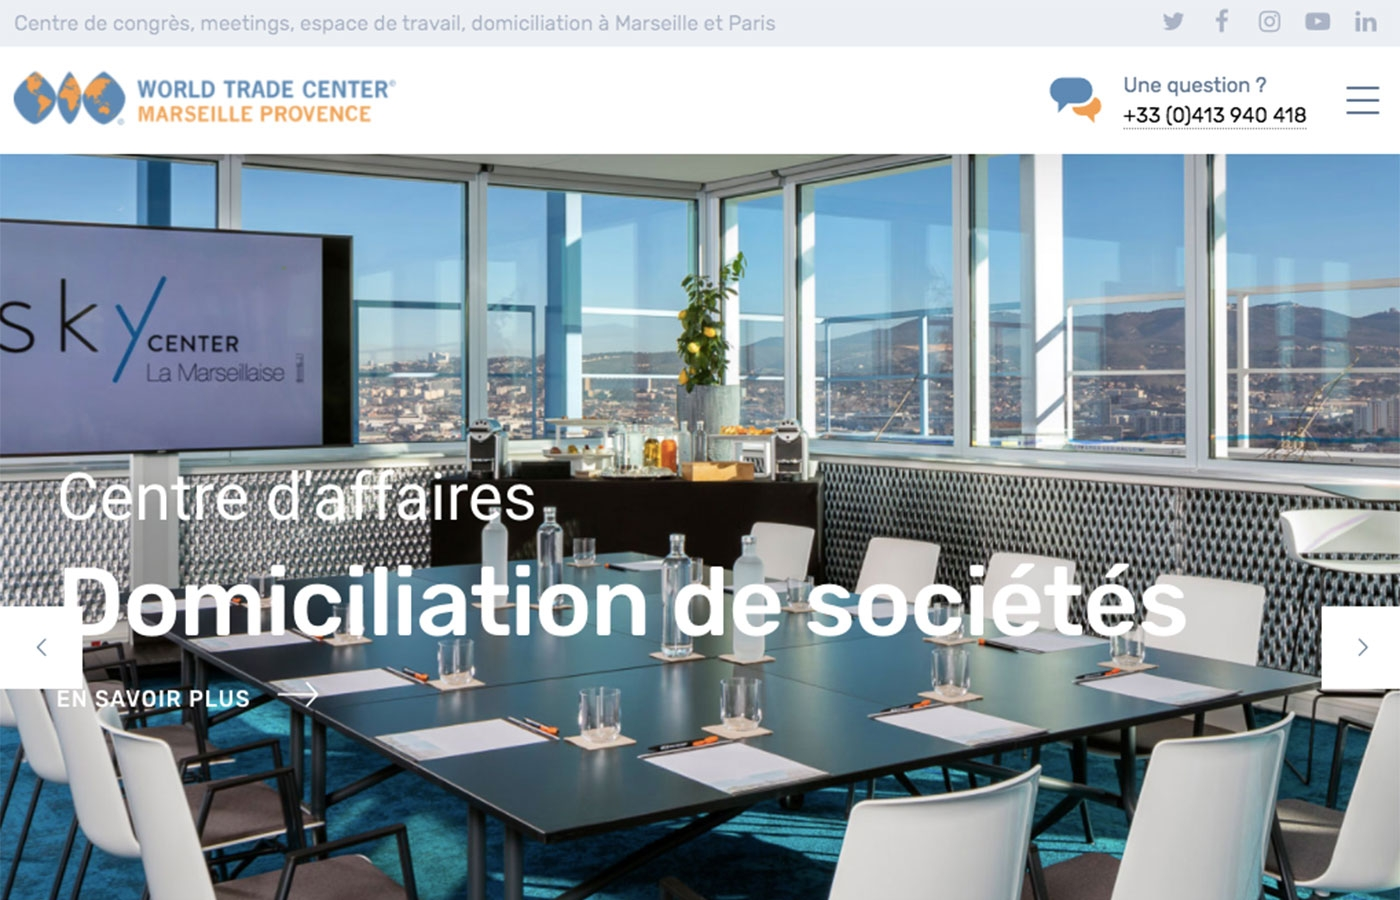 Wagaia  Agence web Marseille, réalise le site de World Trade Center Marseille Provence